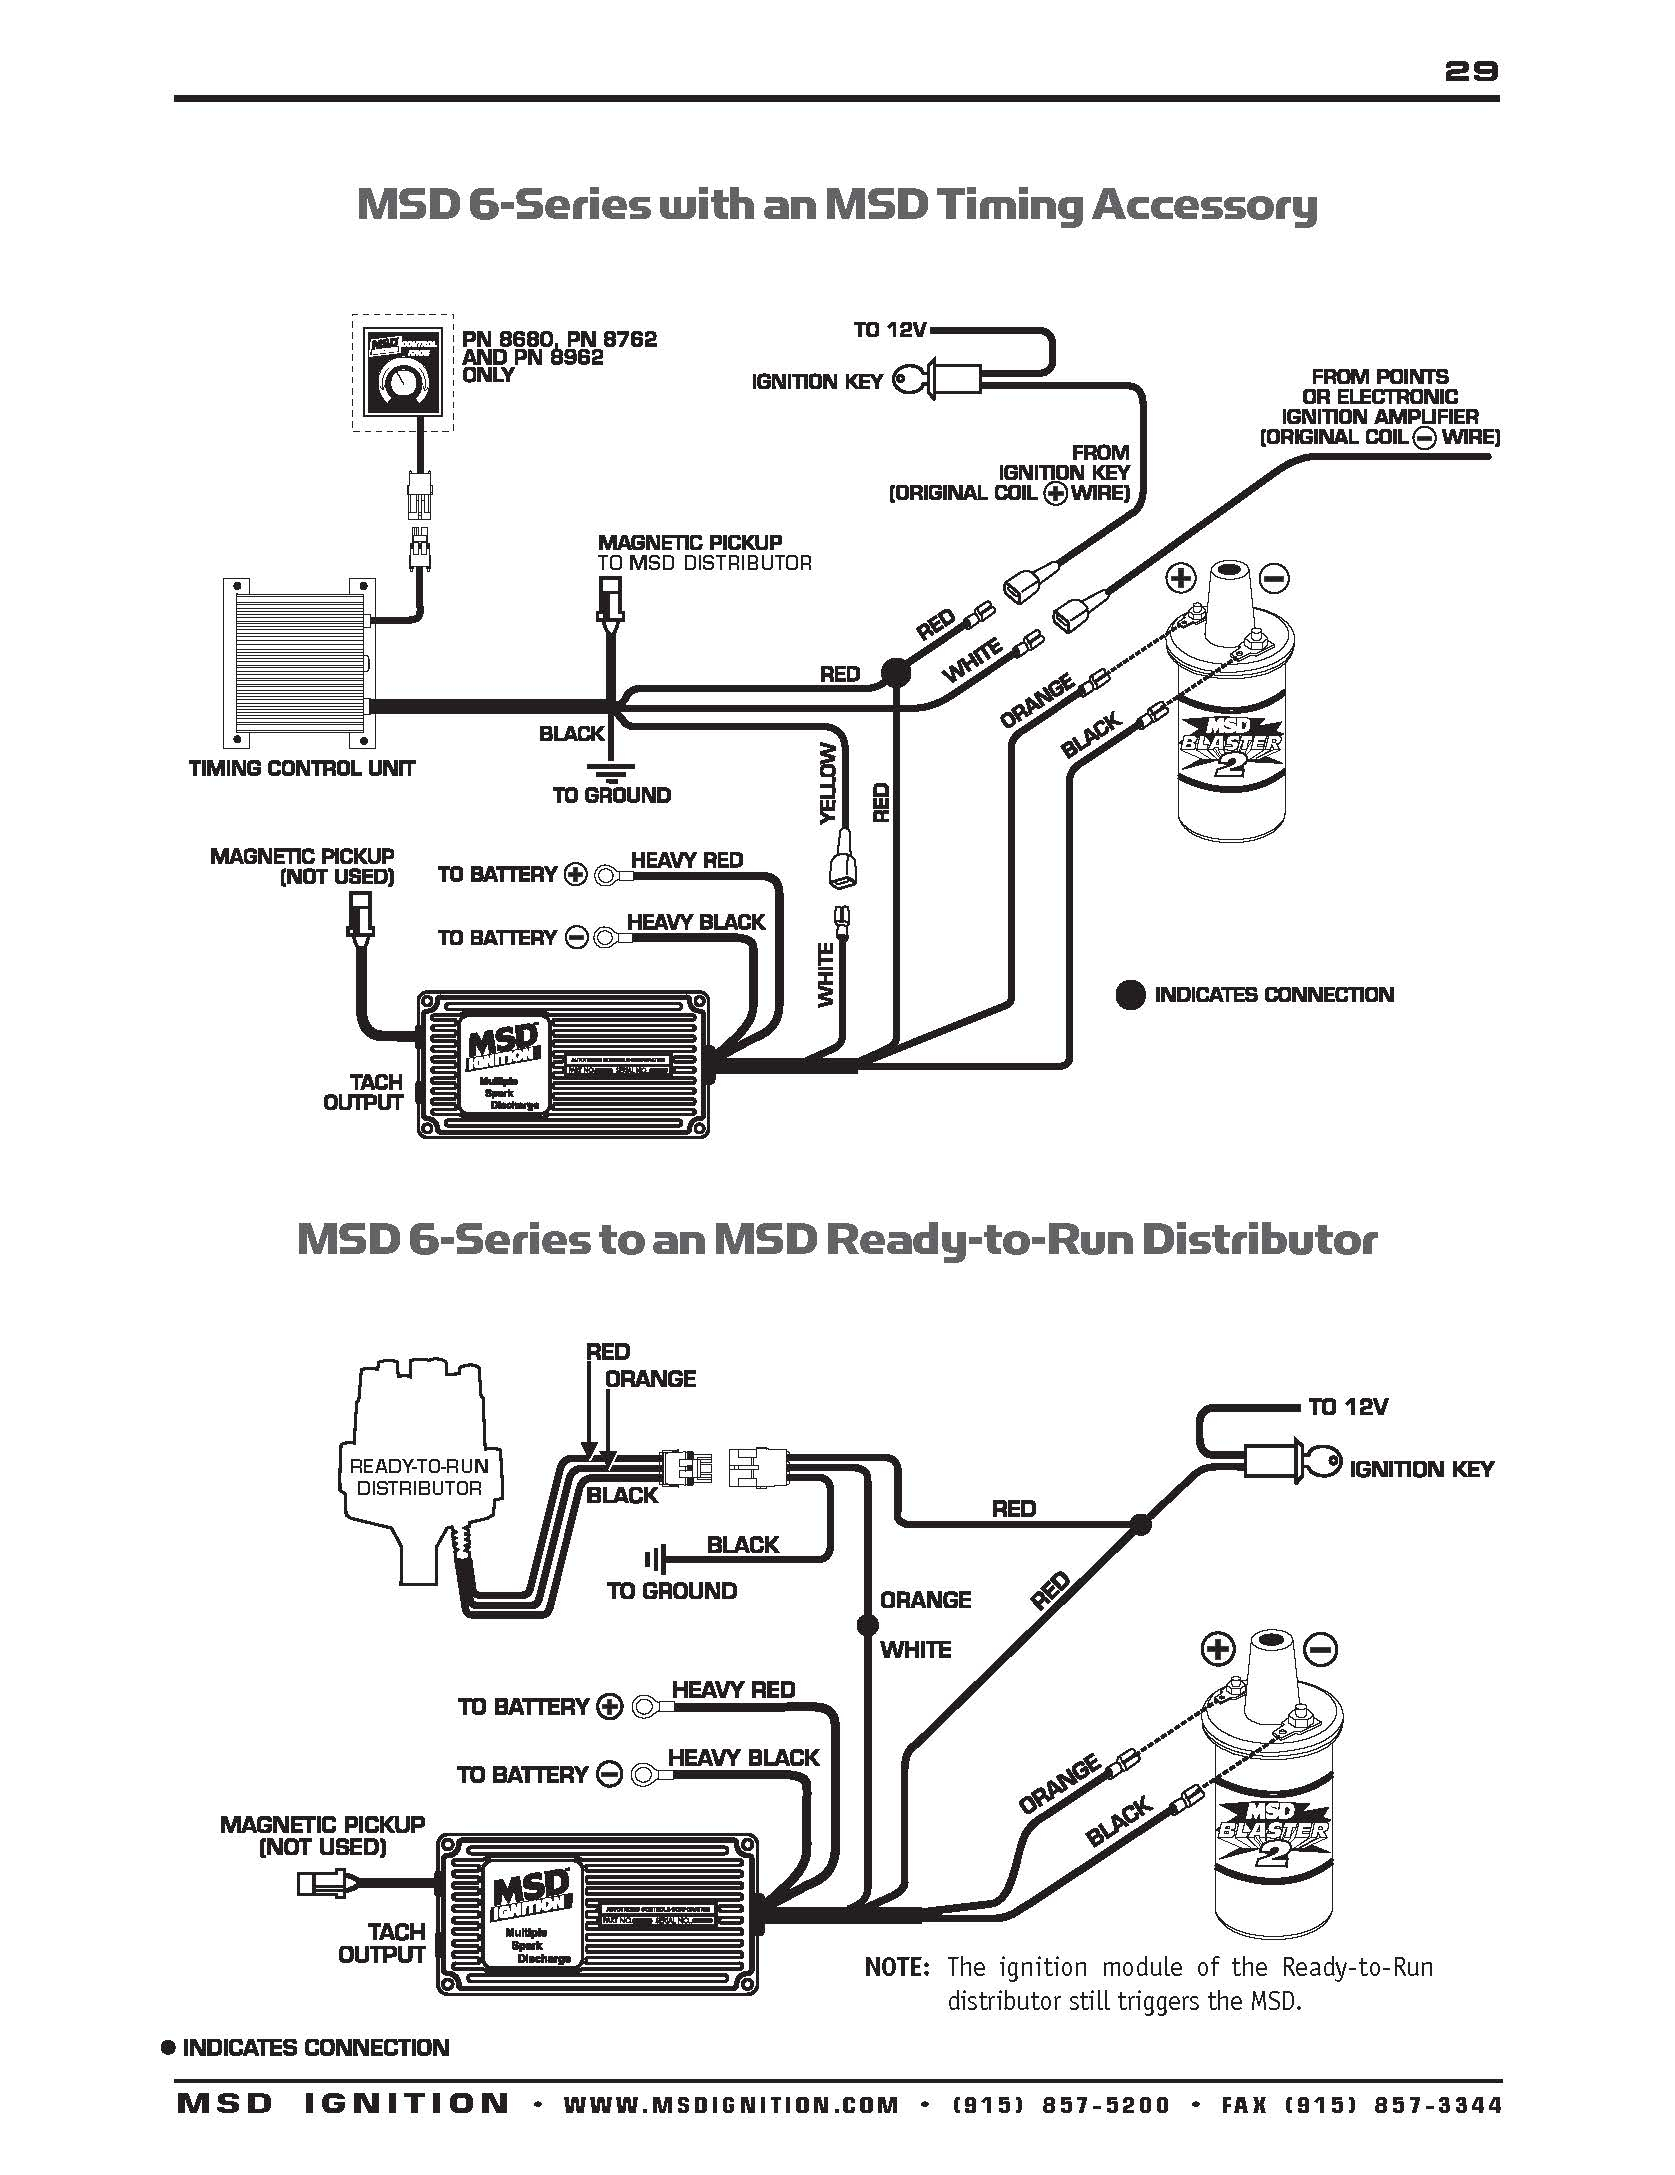 msd ignition 6al wiring diagram Collection-msd 6al 2 wiring Download Msd Ignition Wiring Diagrams With Distributor Diagram To 9 5-s